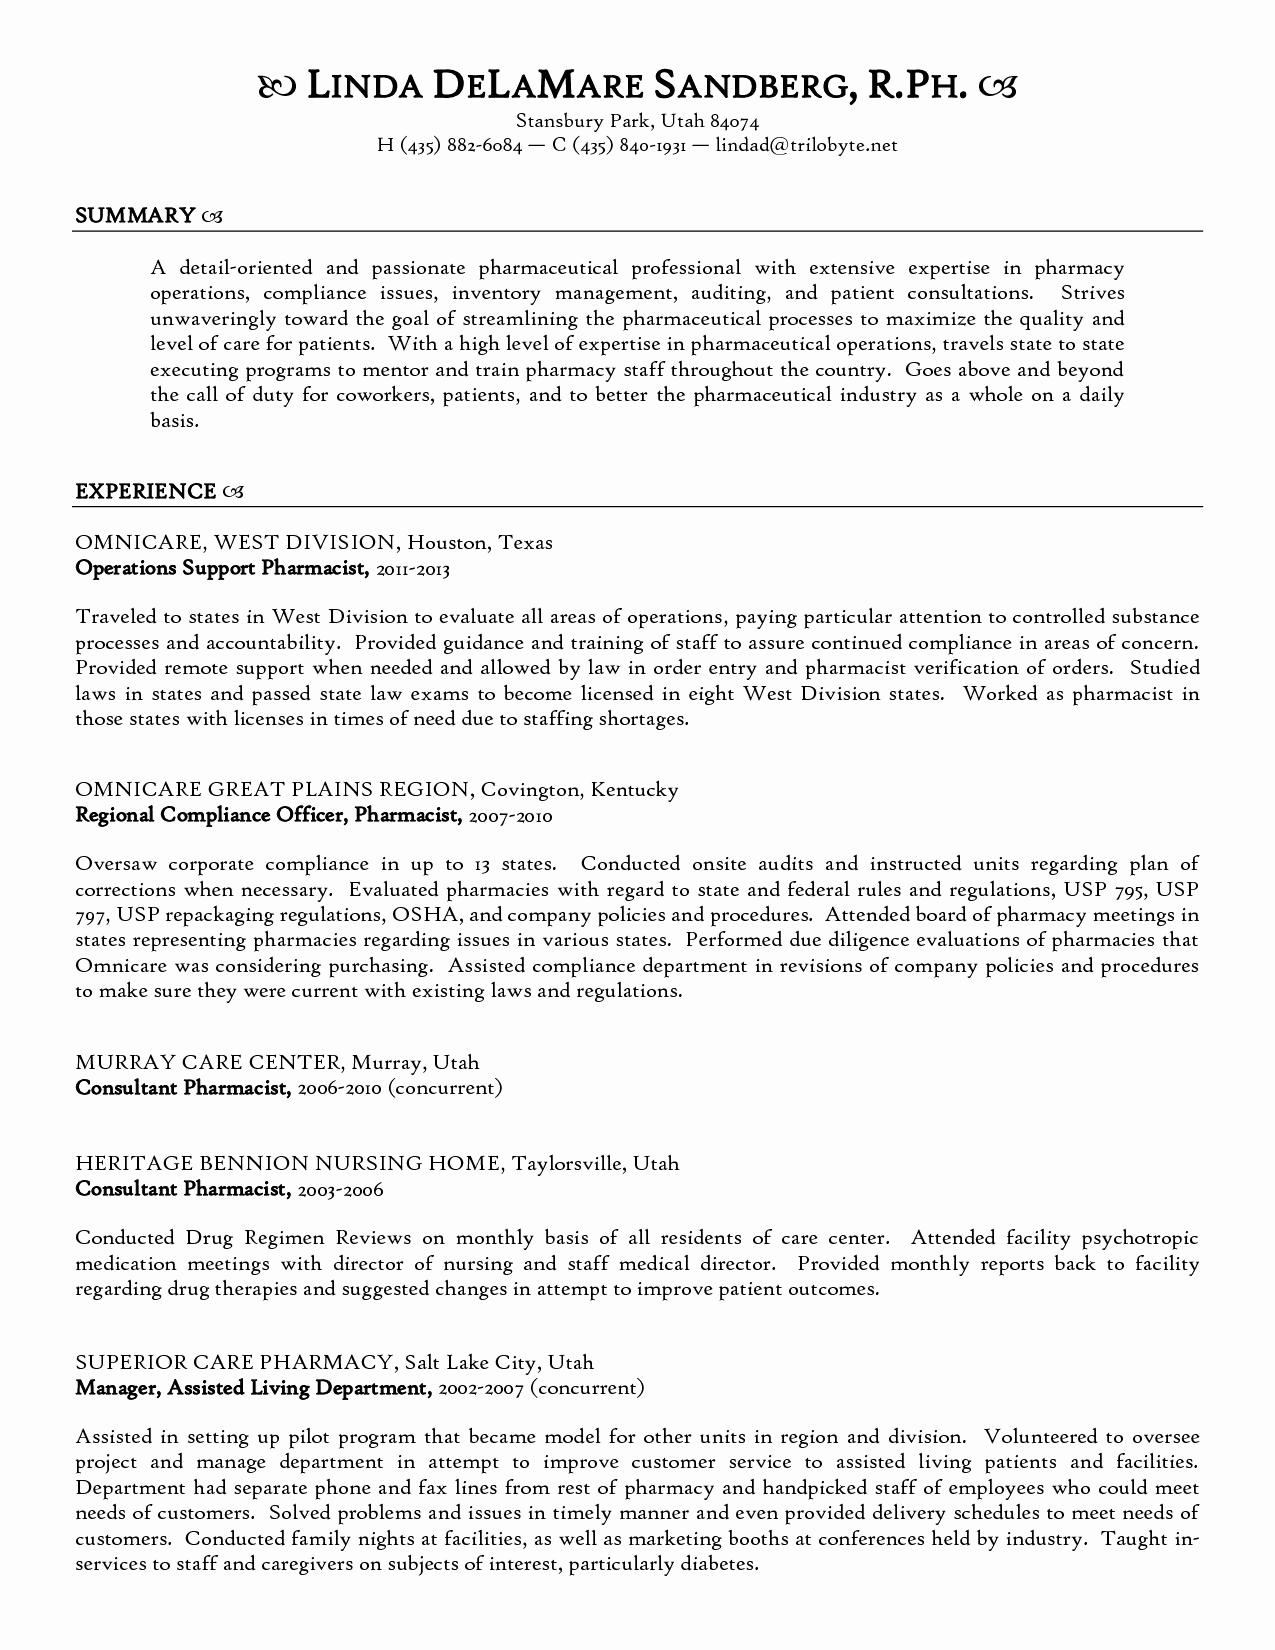 Resume format for Experienced - Resume format for Experienced Technical Support Beautiful Pharmacy